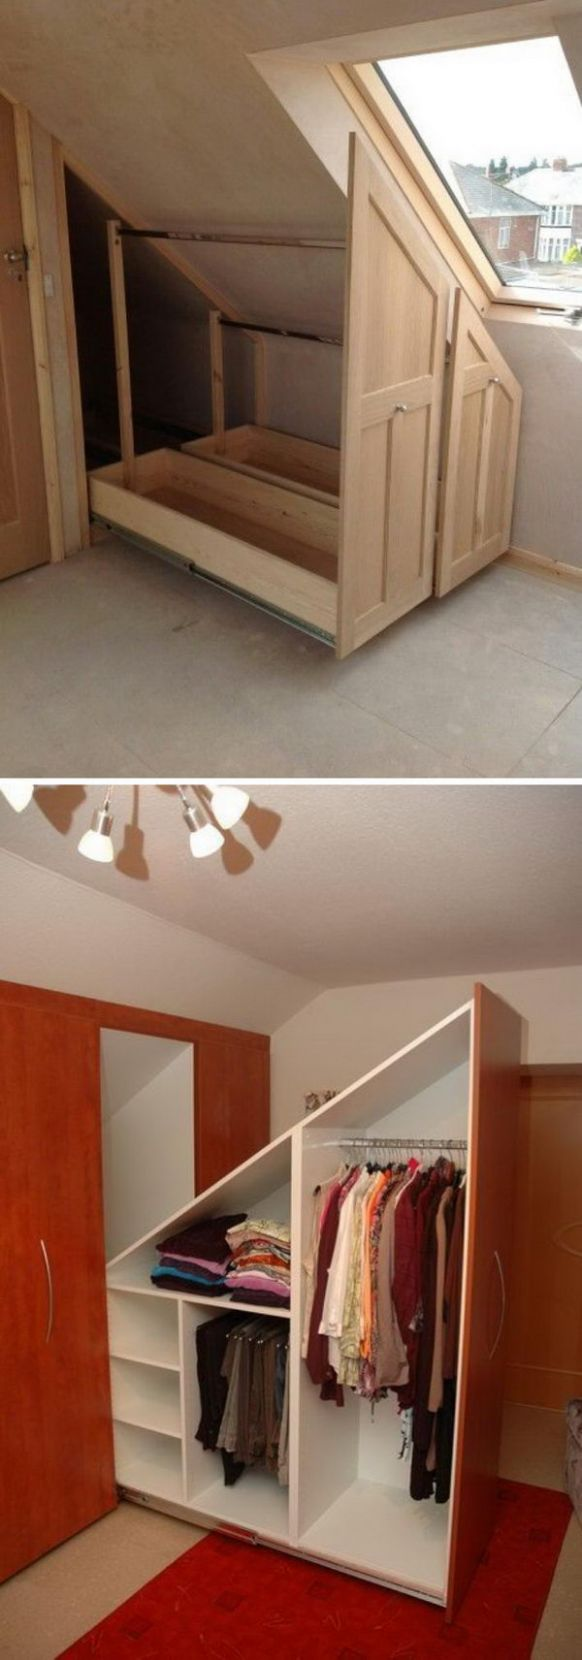 12+ Clever Storage Ideas For Your Attic - Hative - closet ideas attic